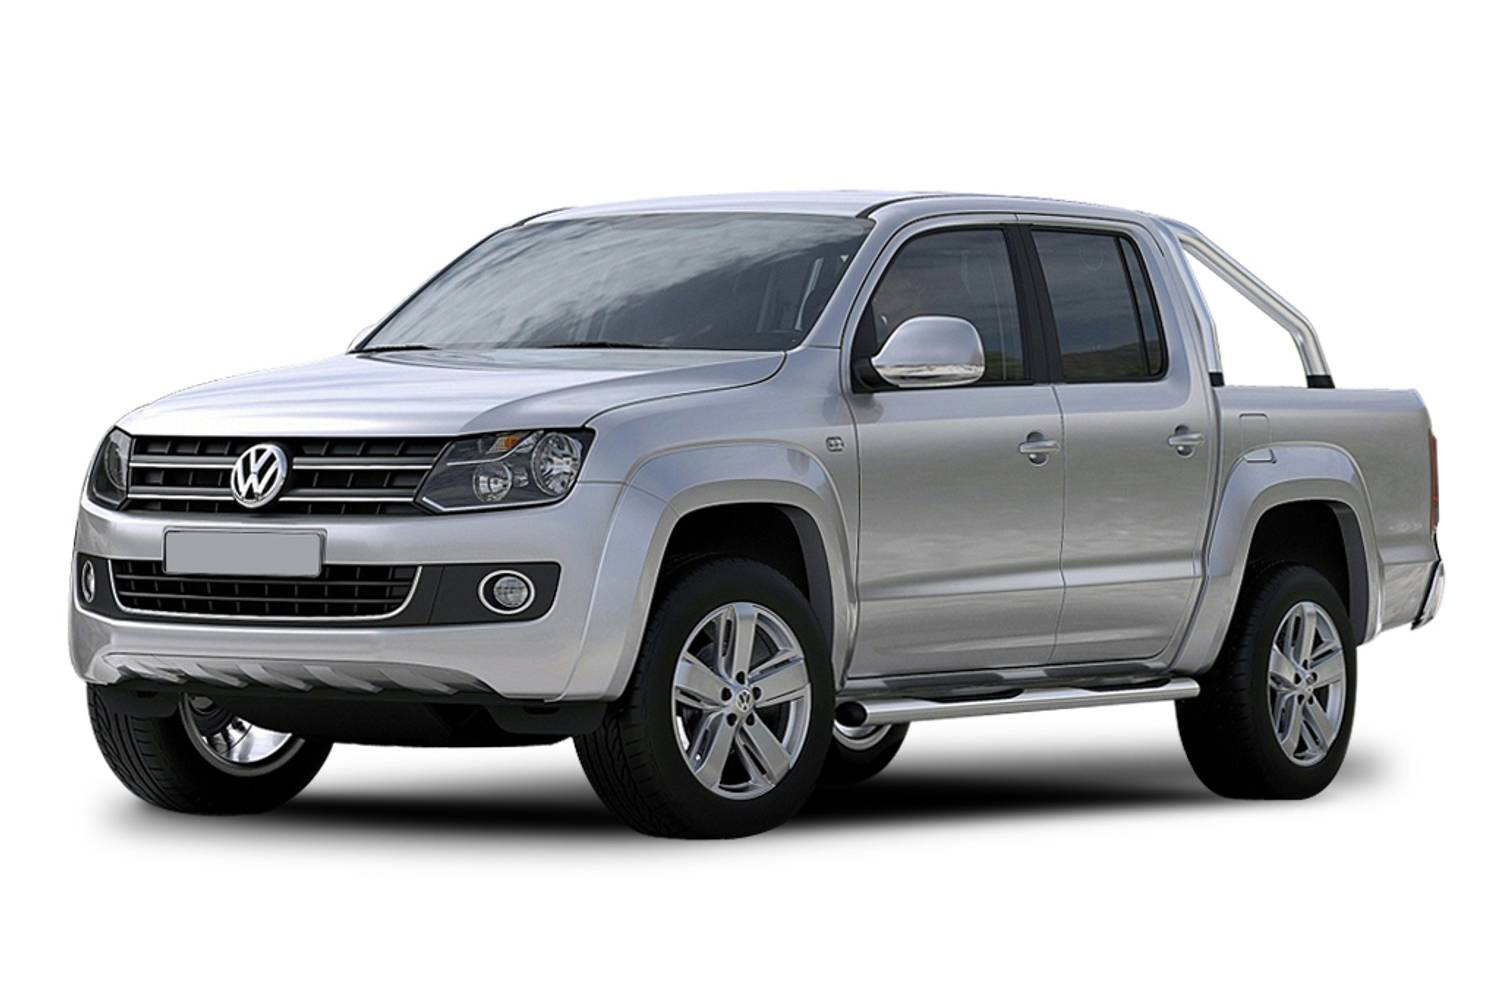 new volkswagen amarok a33 diesel d cab pick up trendline 3 0 v6 tdi 204 ps bmt 4m auto 2016. Black Bedroom Furniture Sets. Home Design Ideas